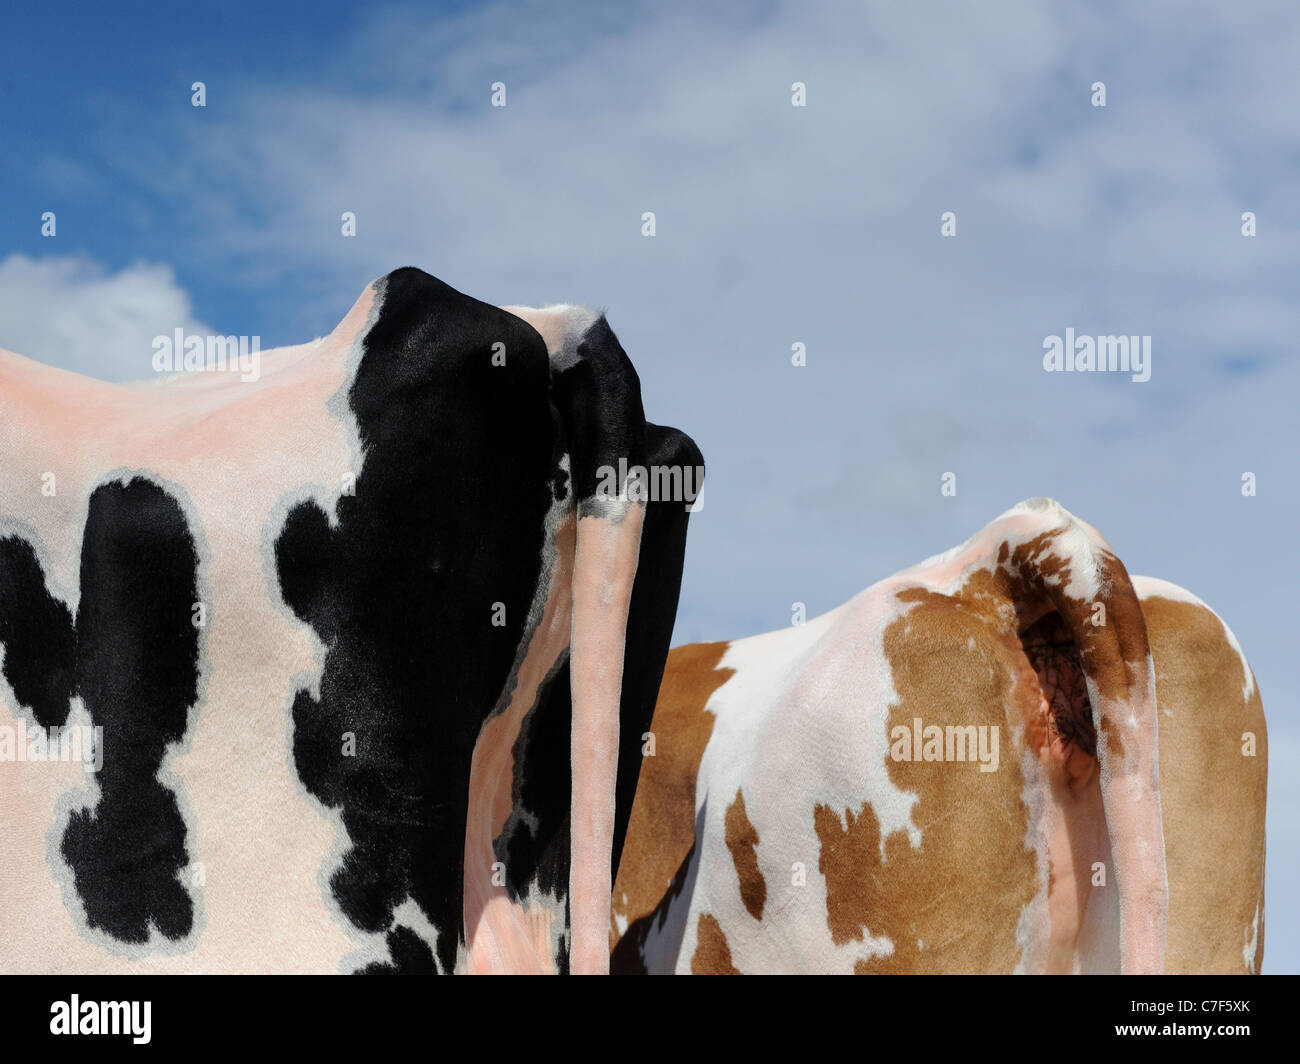 A graphic image of the rear of two cows - Stock Image